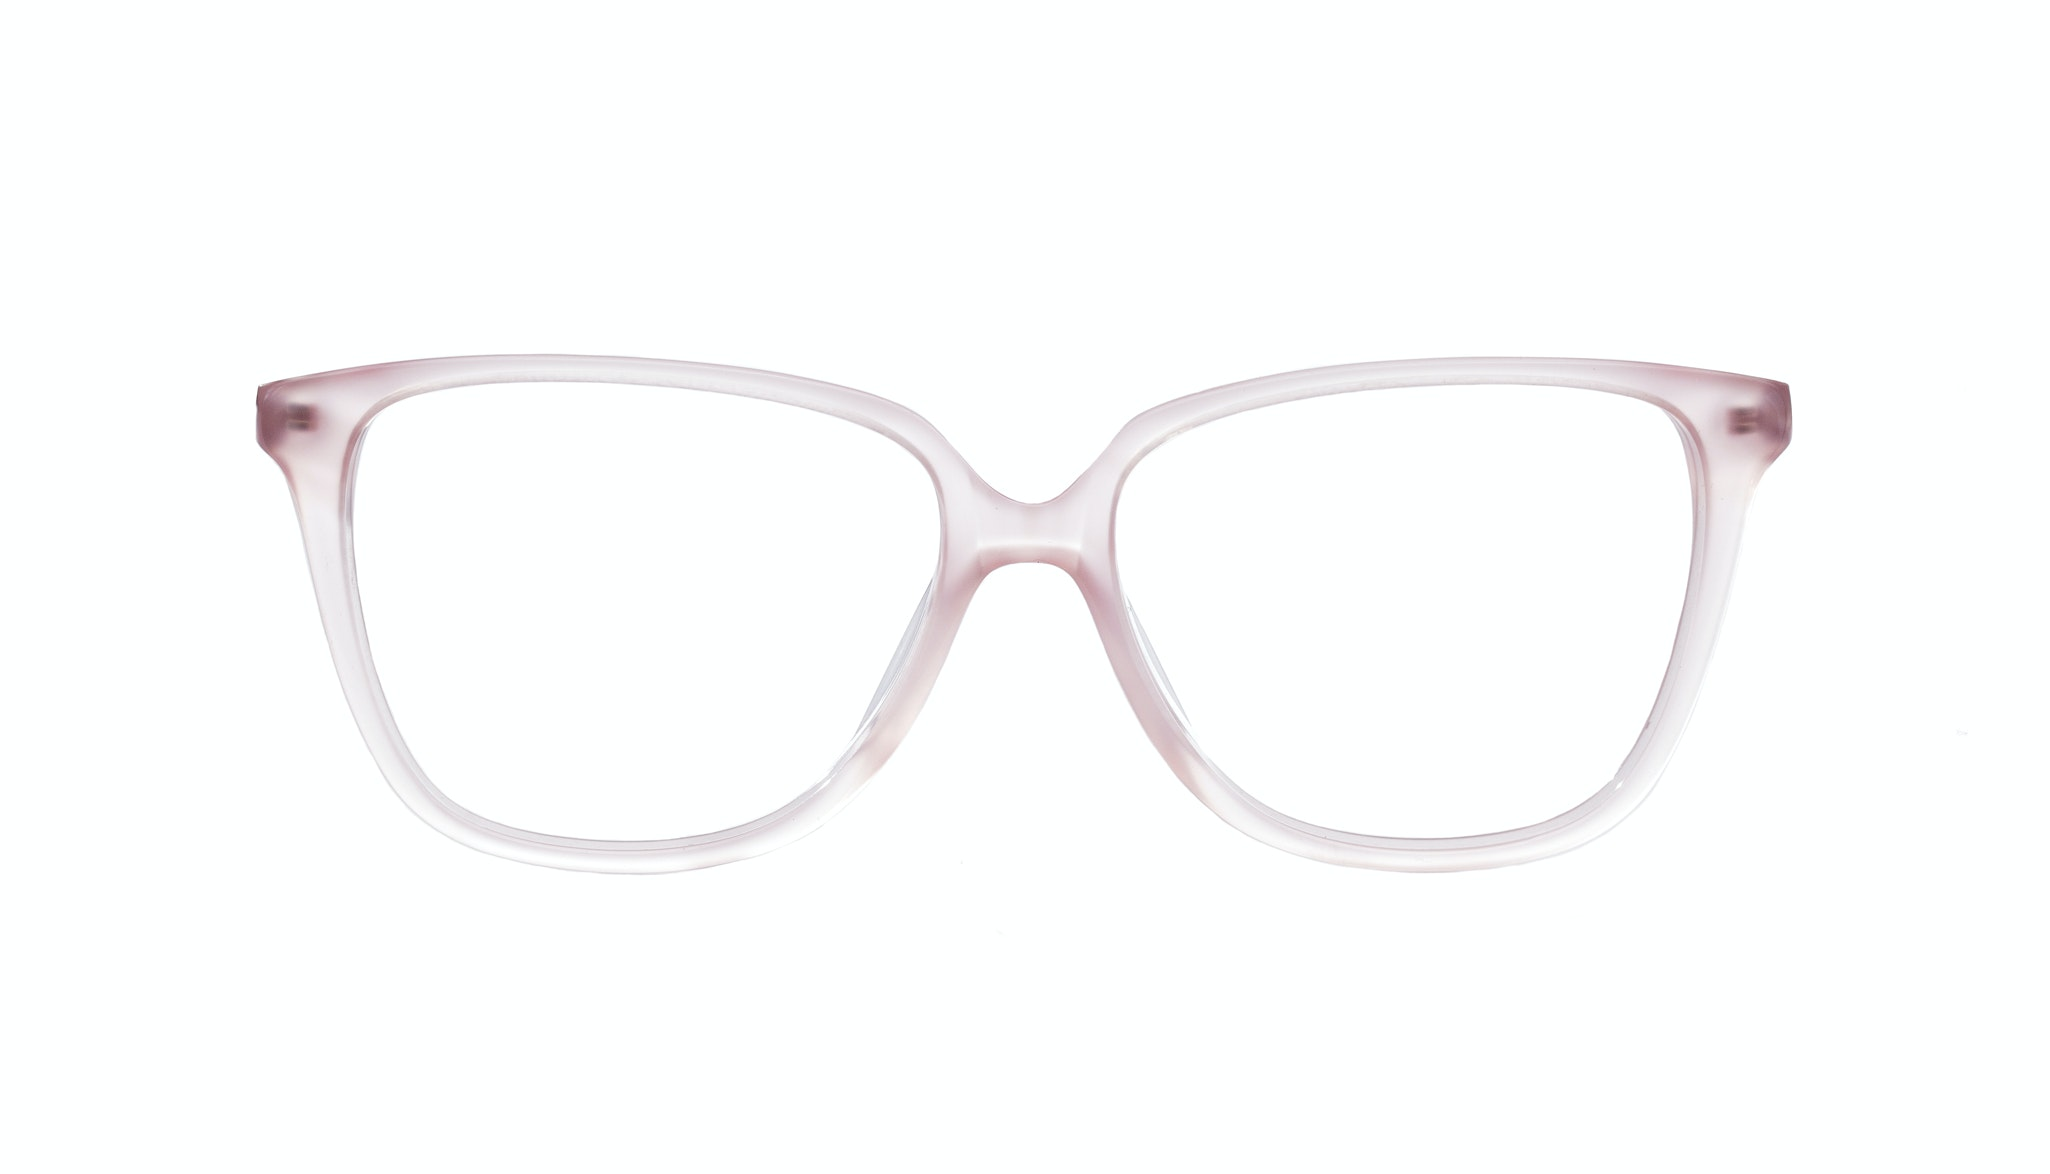 Affordable Fashion Glasses Rectangle Square Eyeglasses Women Muse Pink Mouse